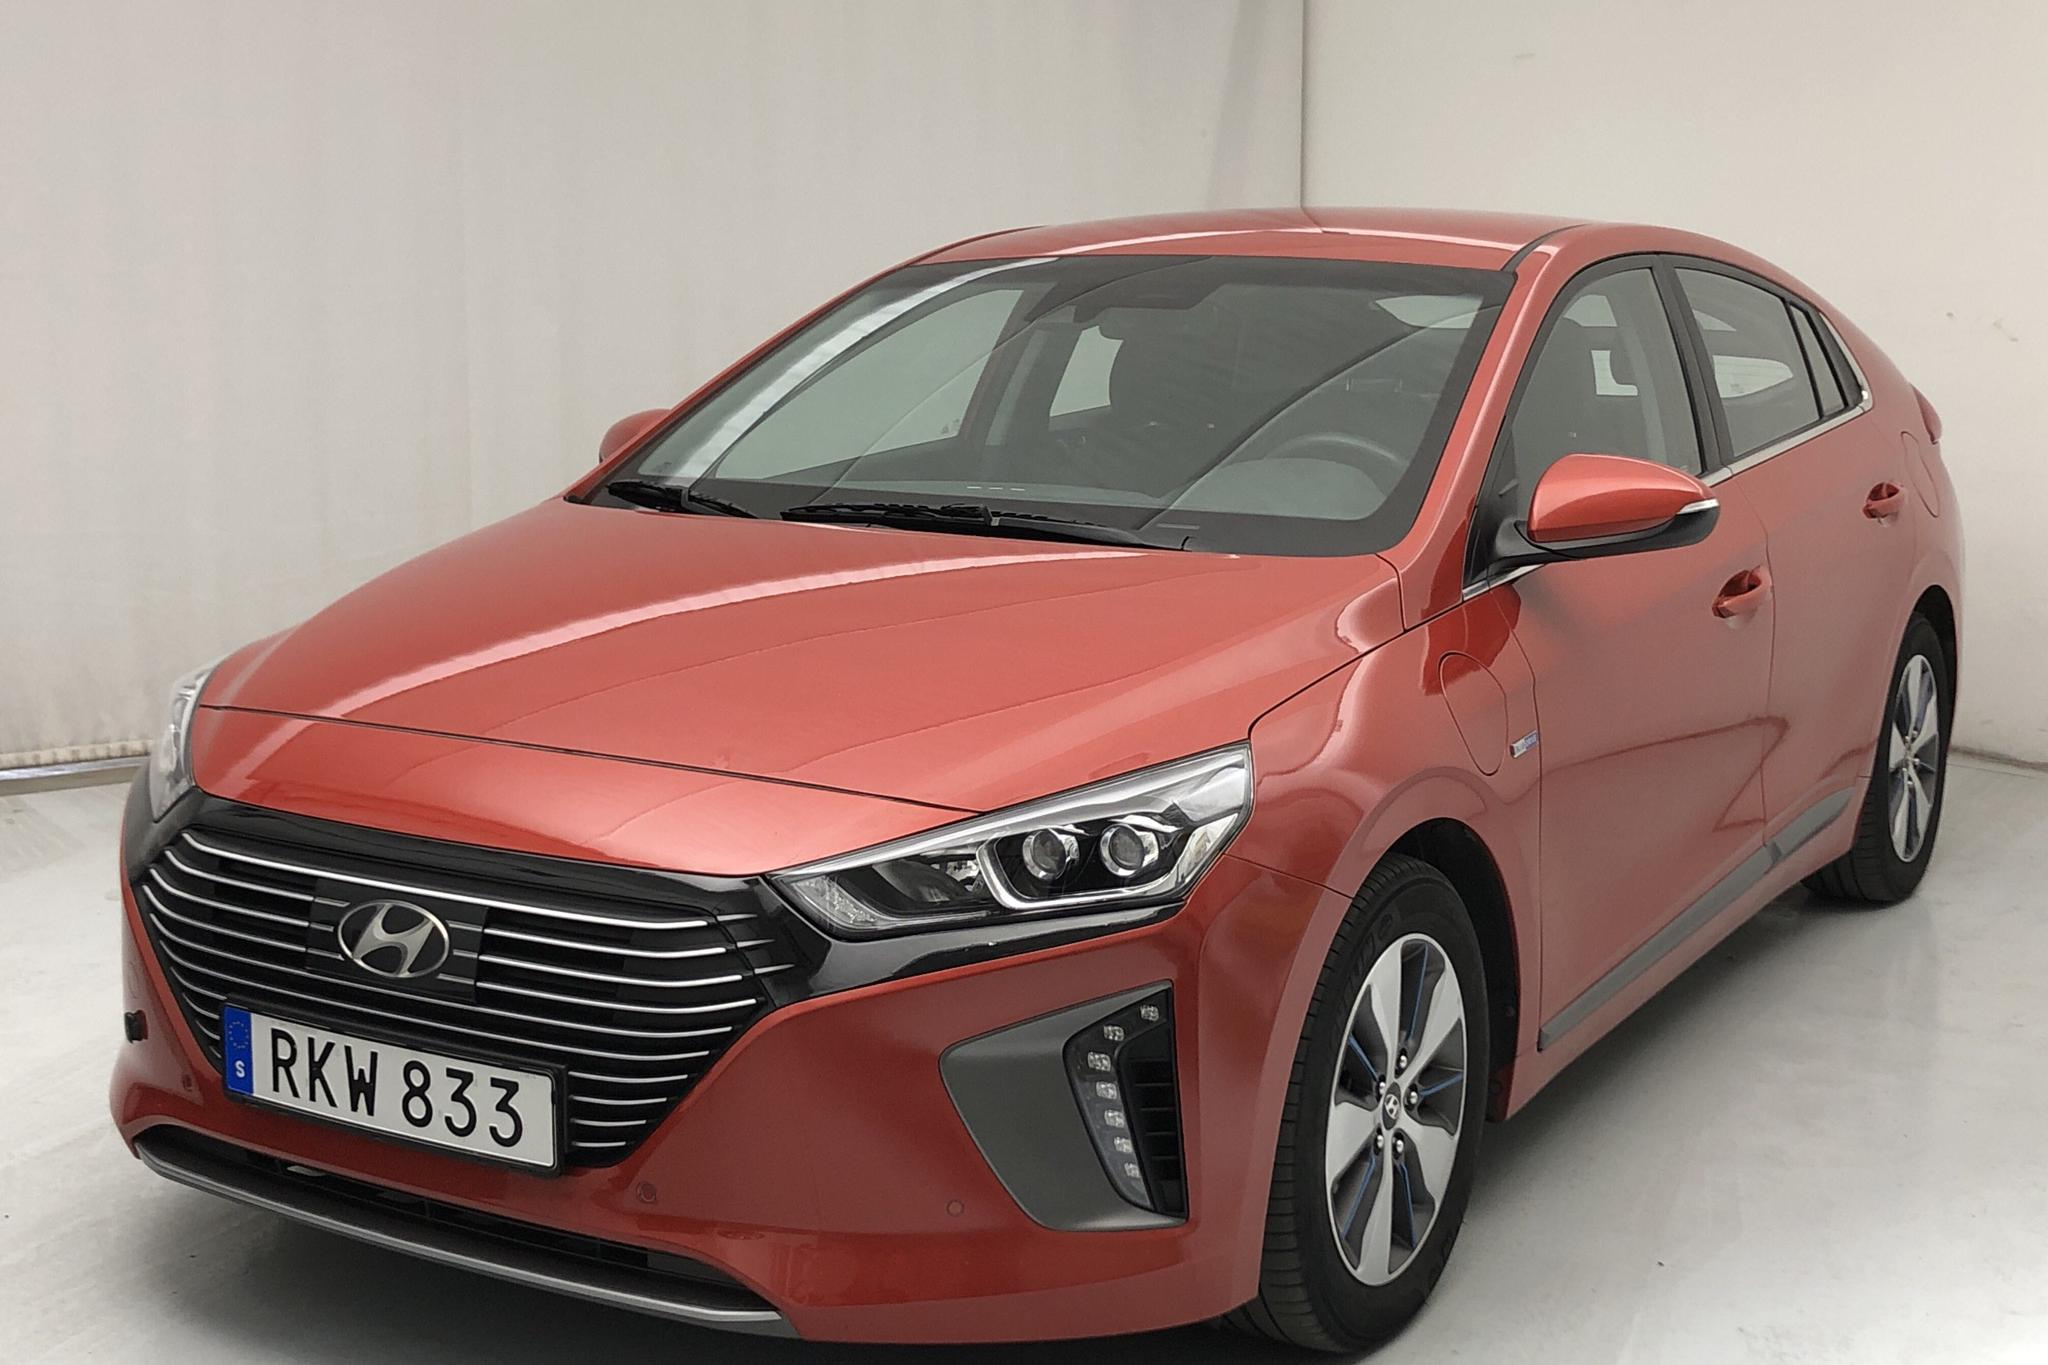 Hyundai IONIQ Plug-in (141hk) - 74 270 km - Automatic - orange - 2017